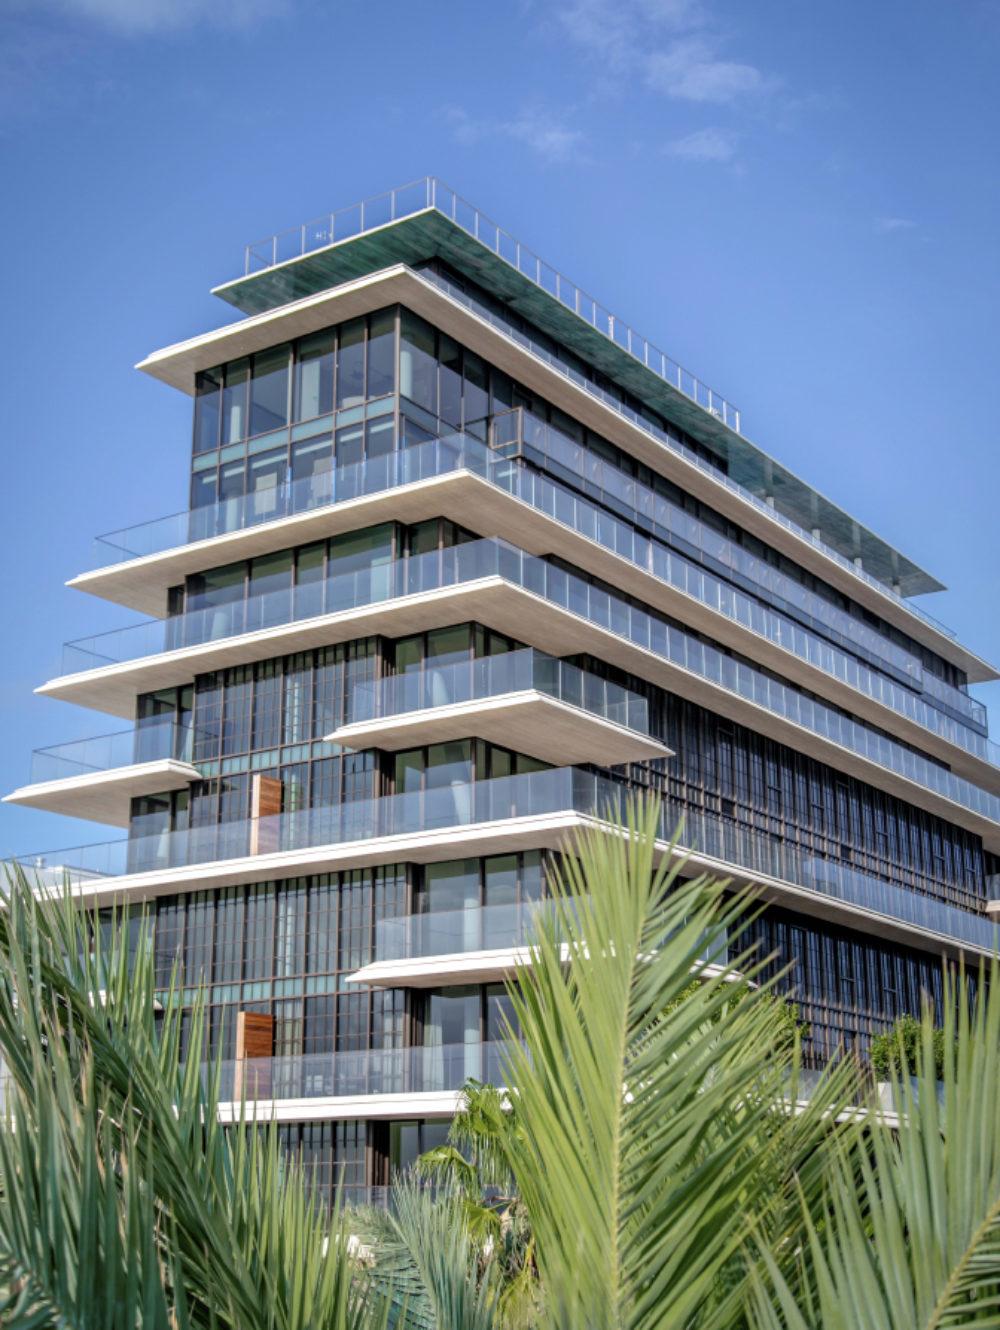 Exterior ground view of Arte Surfside condominiums. Has oceanfront view, palm trees and full architectural details.